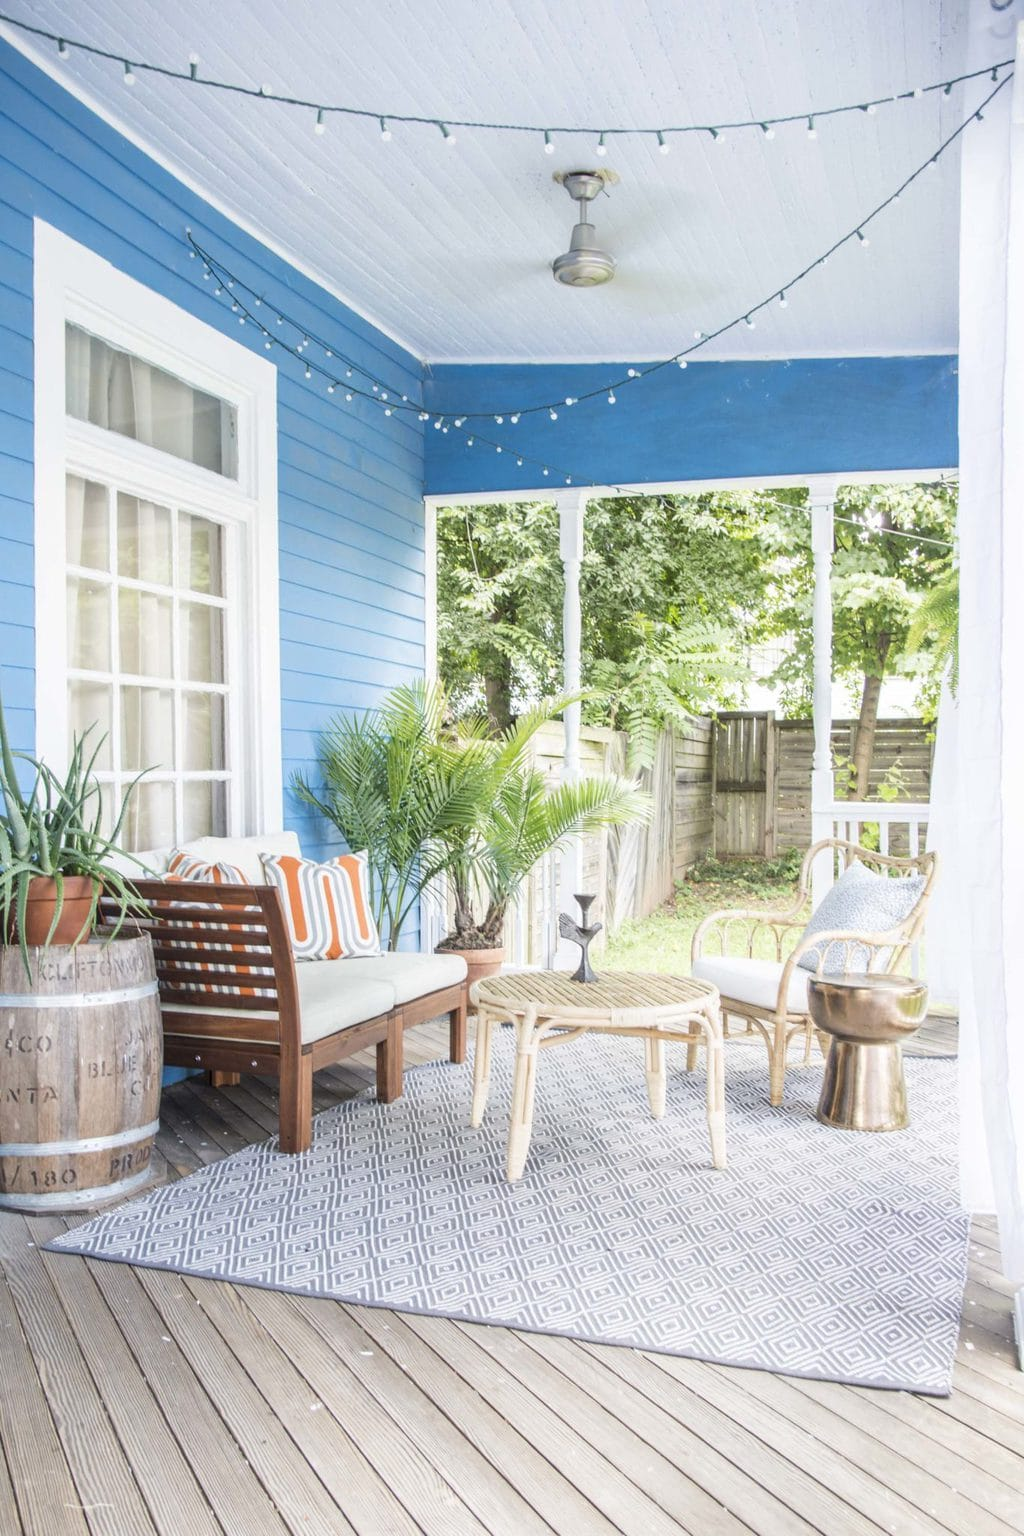 Tye Street Project porch makeover reveal on Thou Swell @thouswellblog